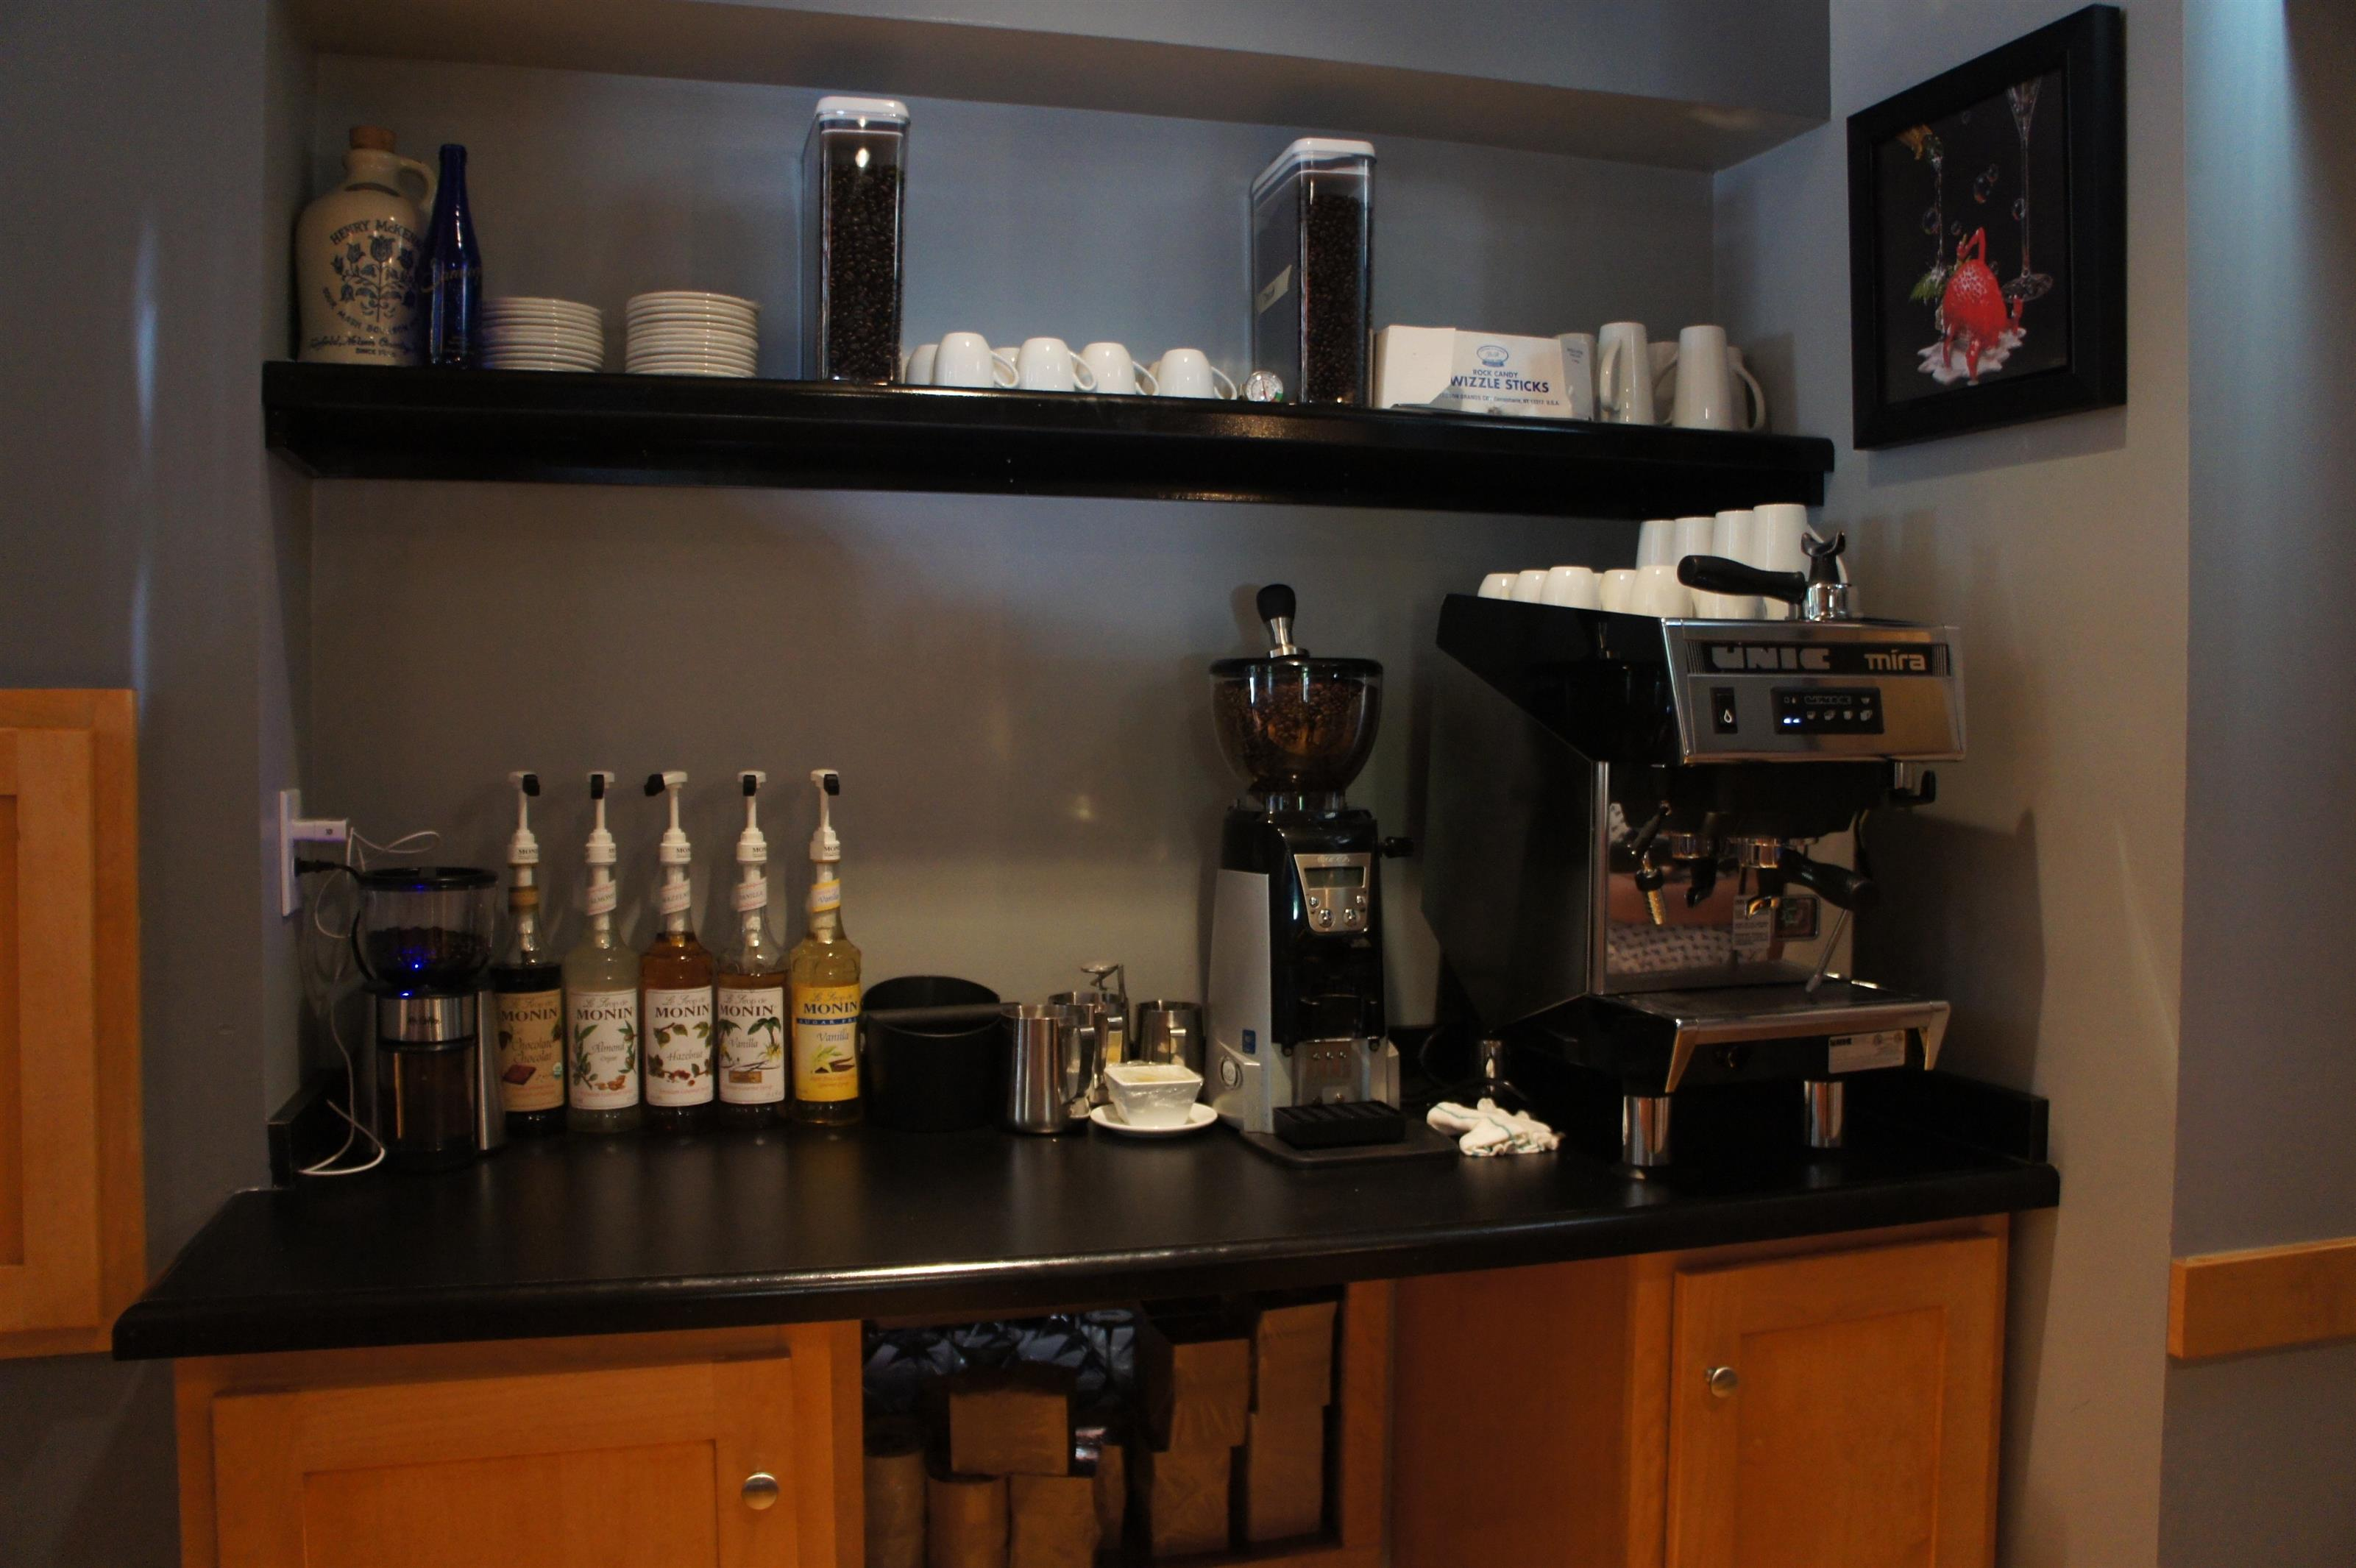 Coffee station with coffee steamer and grinder, a shelf with white coffee cups and an aaray of syrup flavors